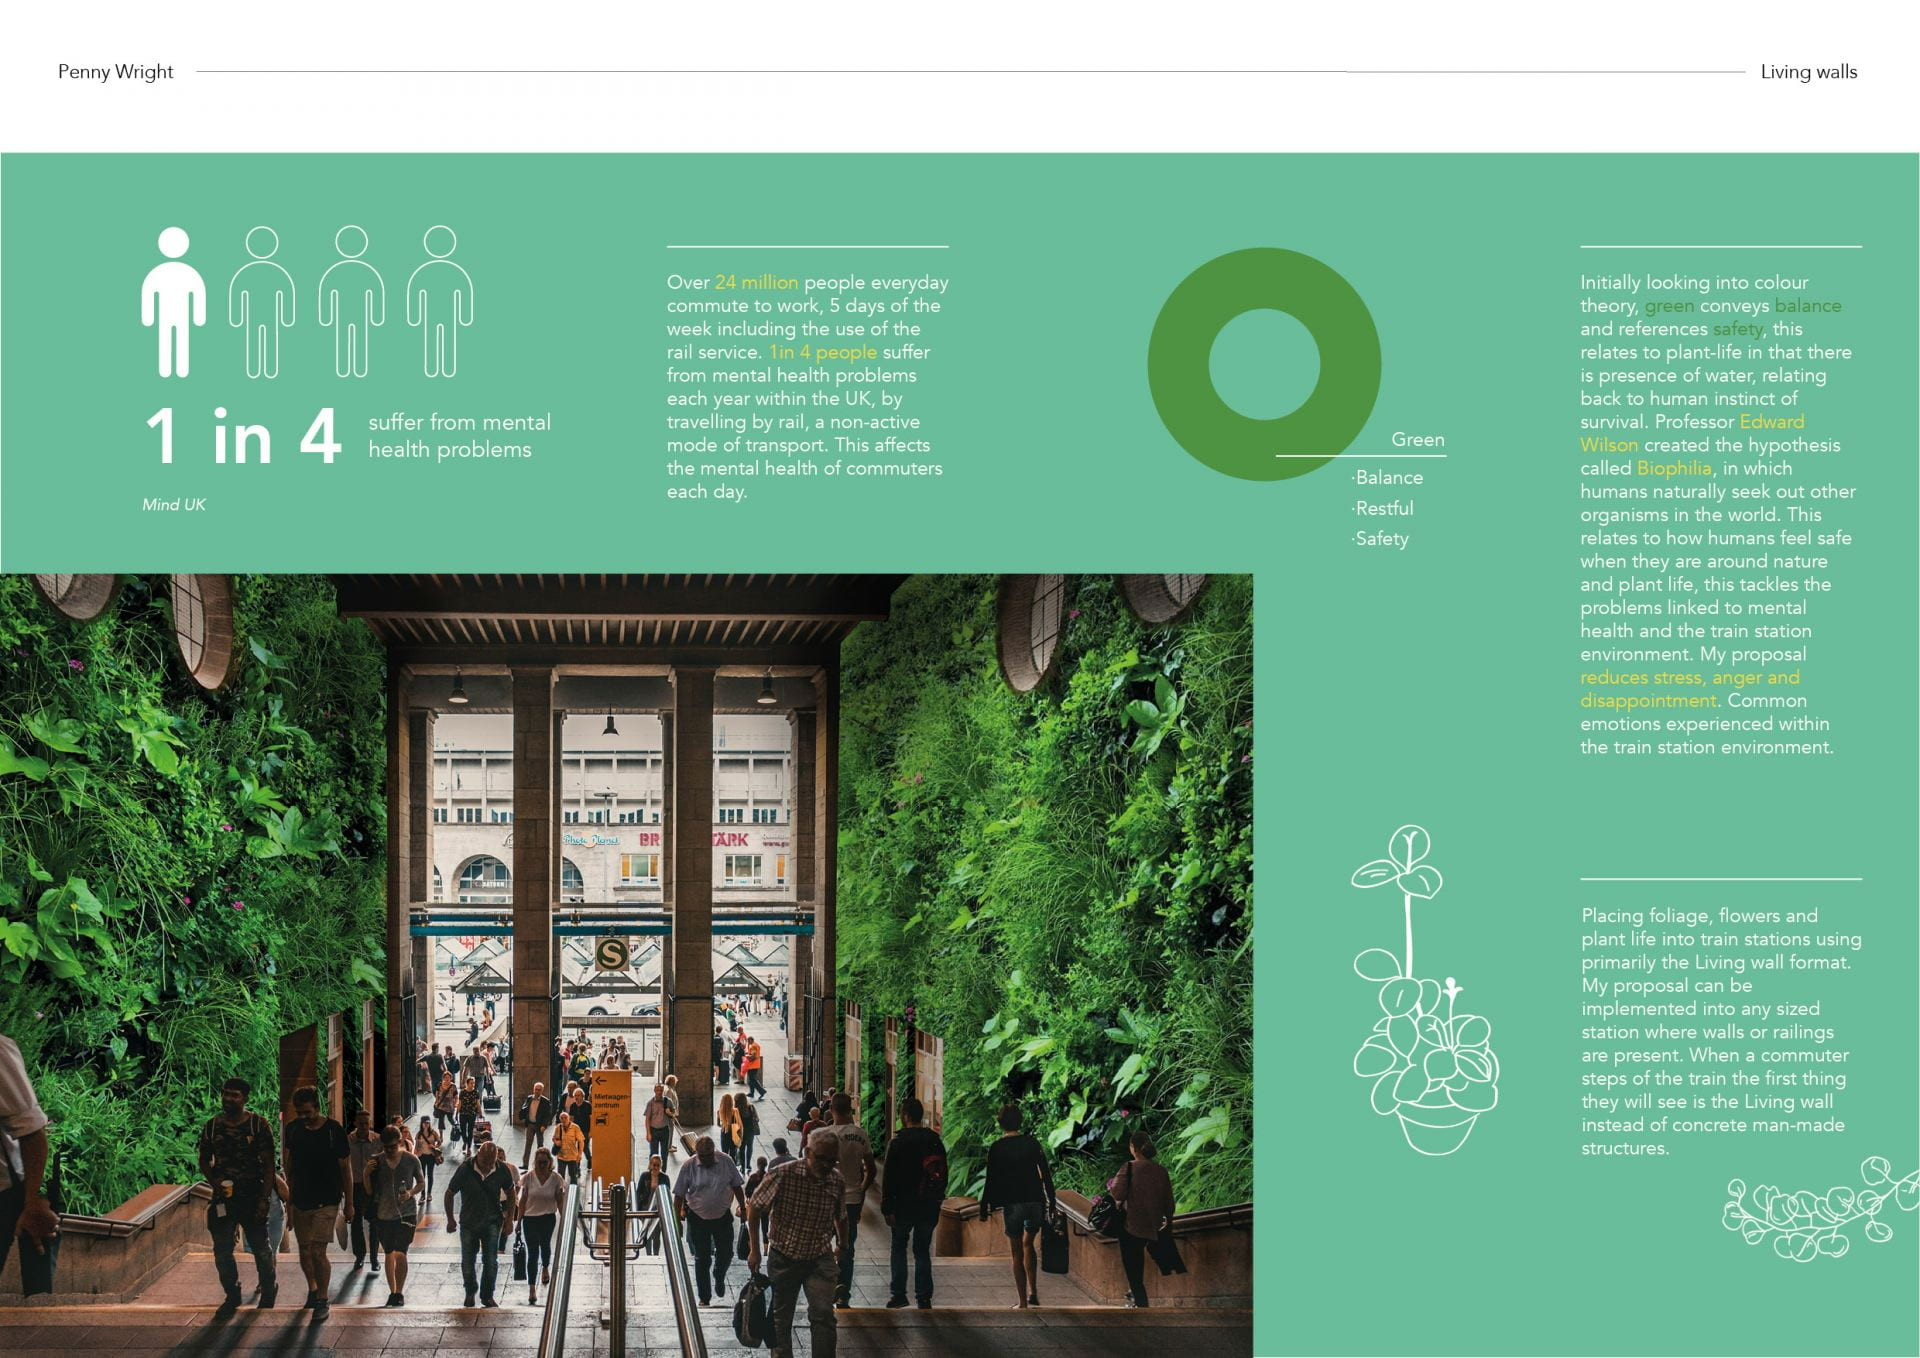 Presentation slide with an image of a doorway with greenery around it and information about the living walls project.